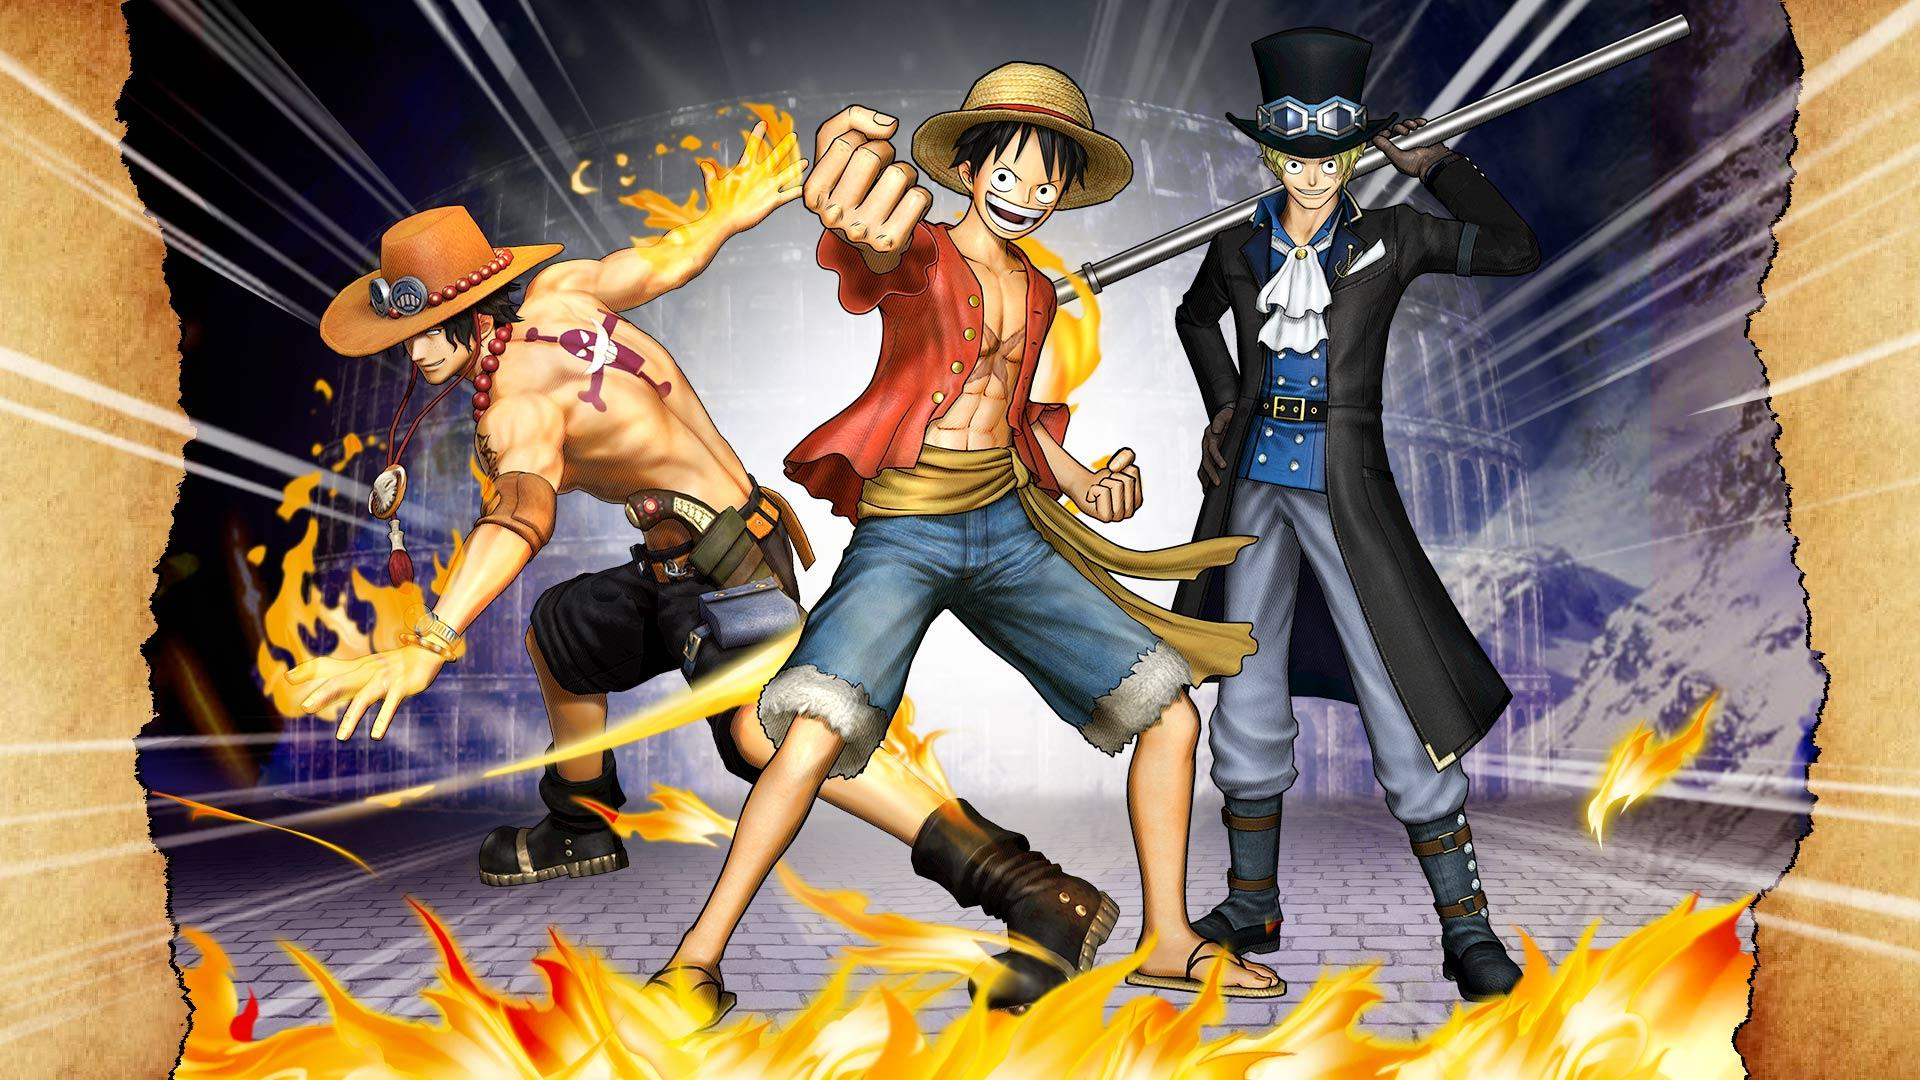 One Piece Pirates Warrior 5 Sequel Game Possible